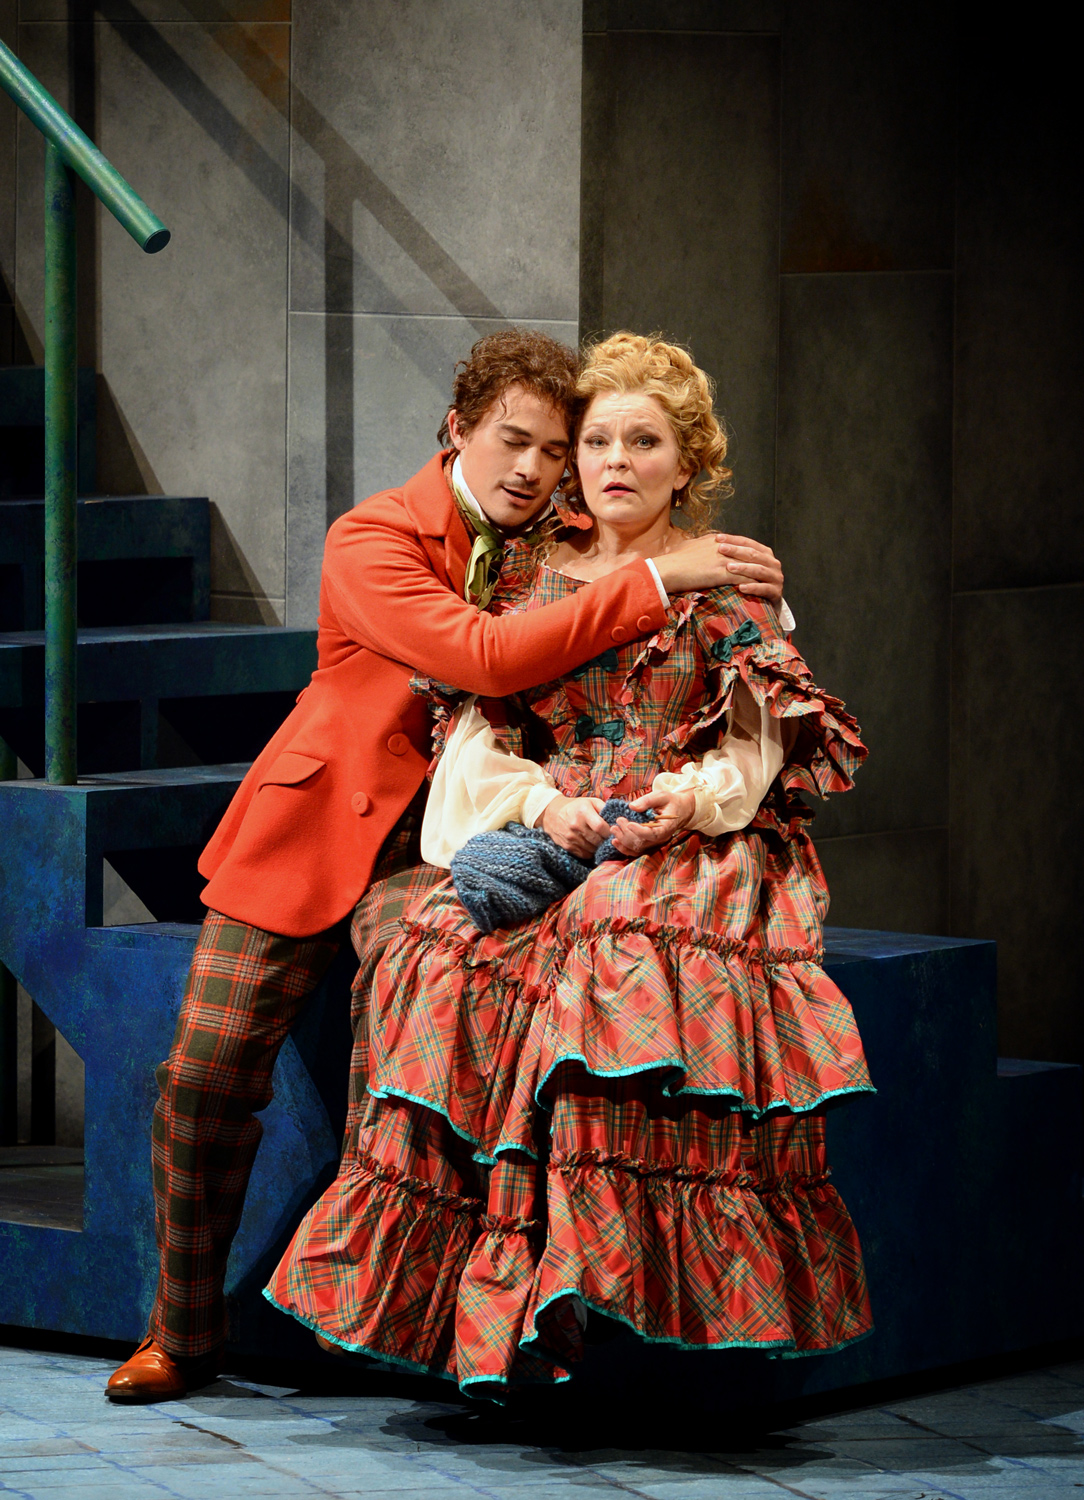 Christian Sanders as Tobias Ragg and Lucy Schaufer as Mrs. Lovett